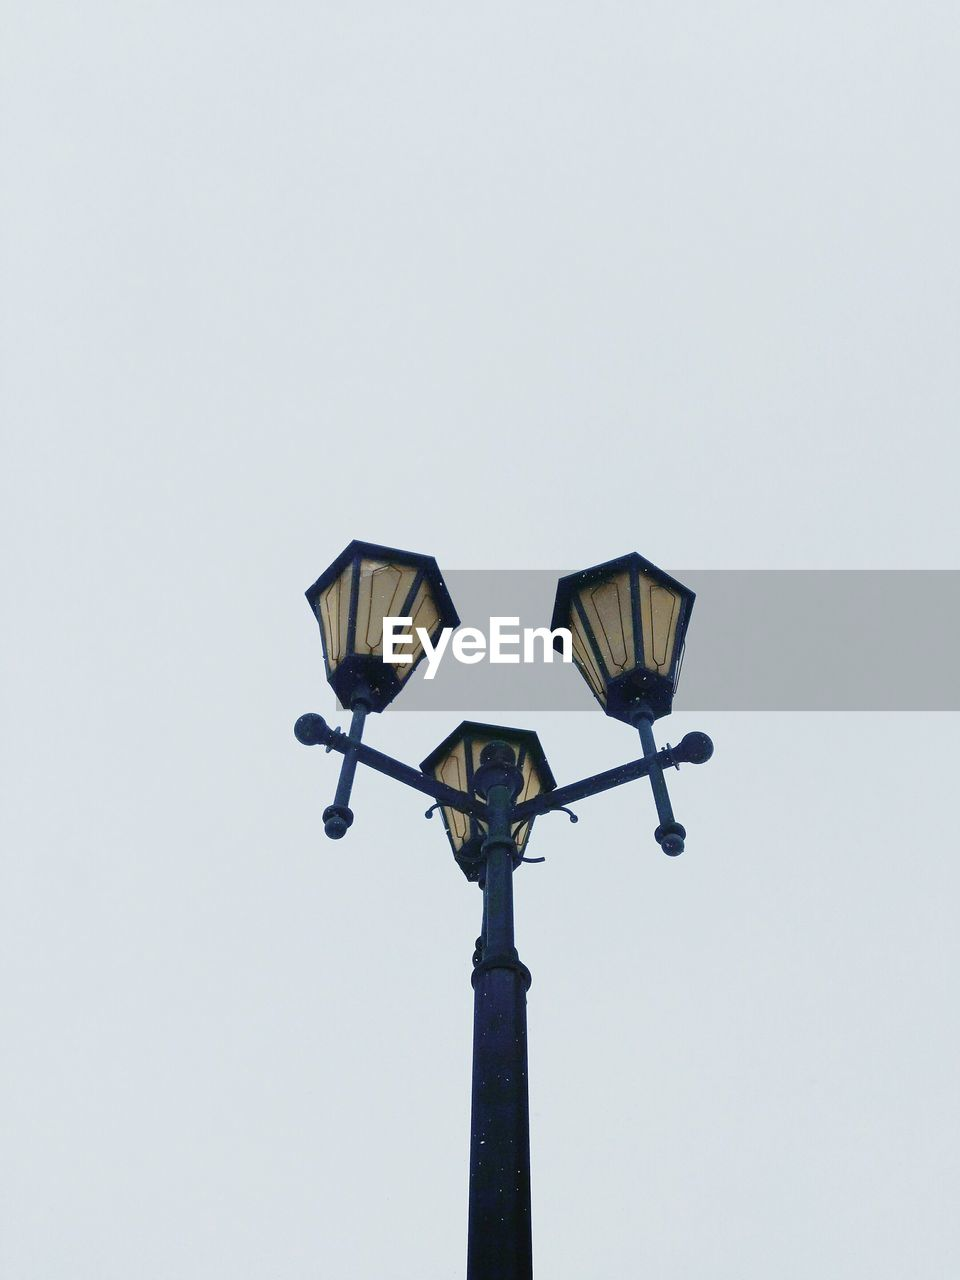 lighting equipment, street, street light, low angle view, sky, copy space, electric light, clear sky, no people, light, nature, gas light, technology, outdoors, retro styled, antique, day, electric lamp, electricity, light fixture